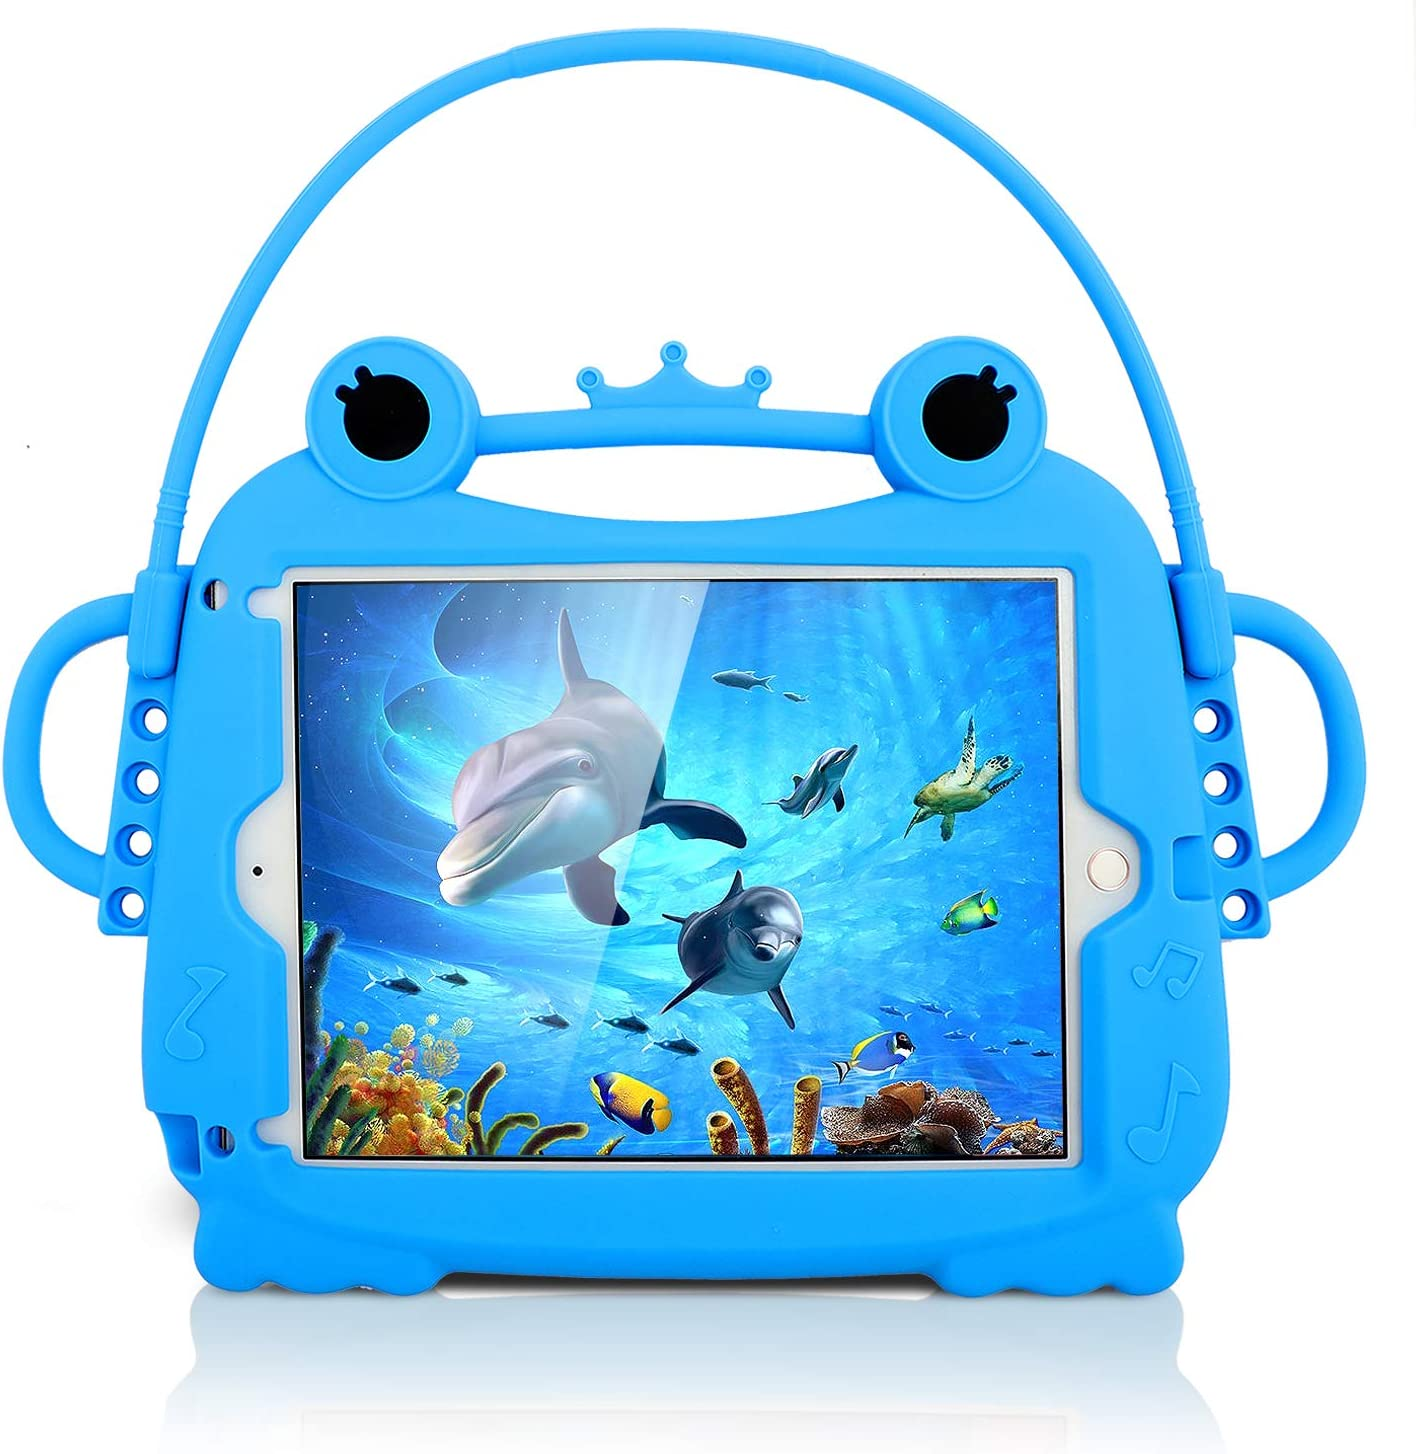 iPad Case for Kids,New iPad 2018 9.7 Case